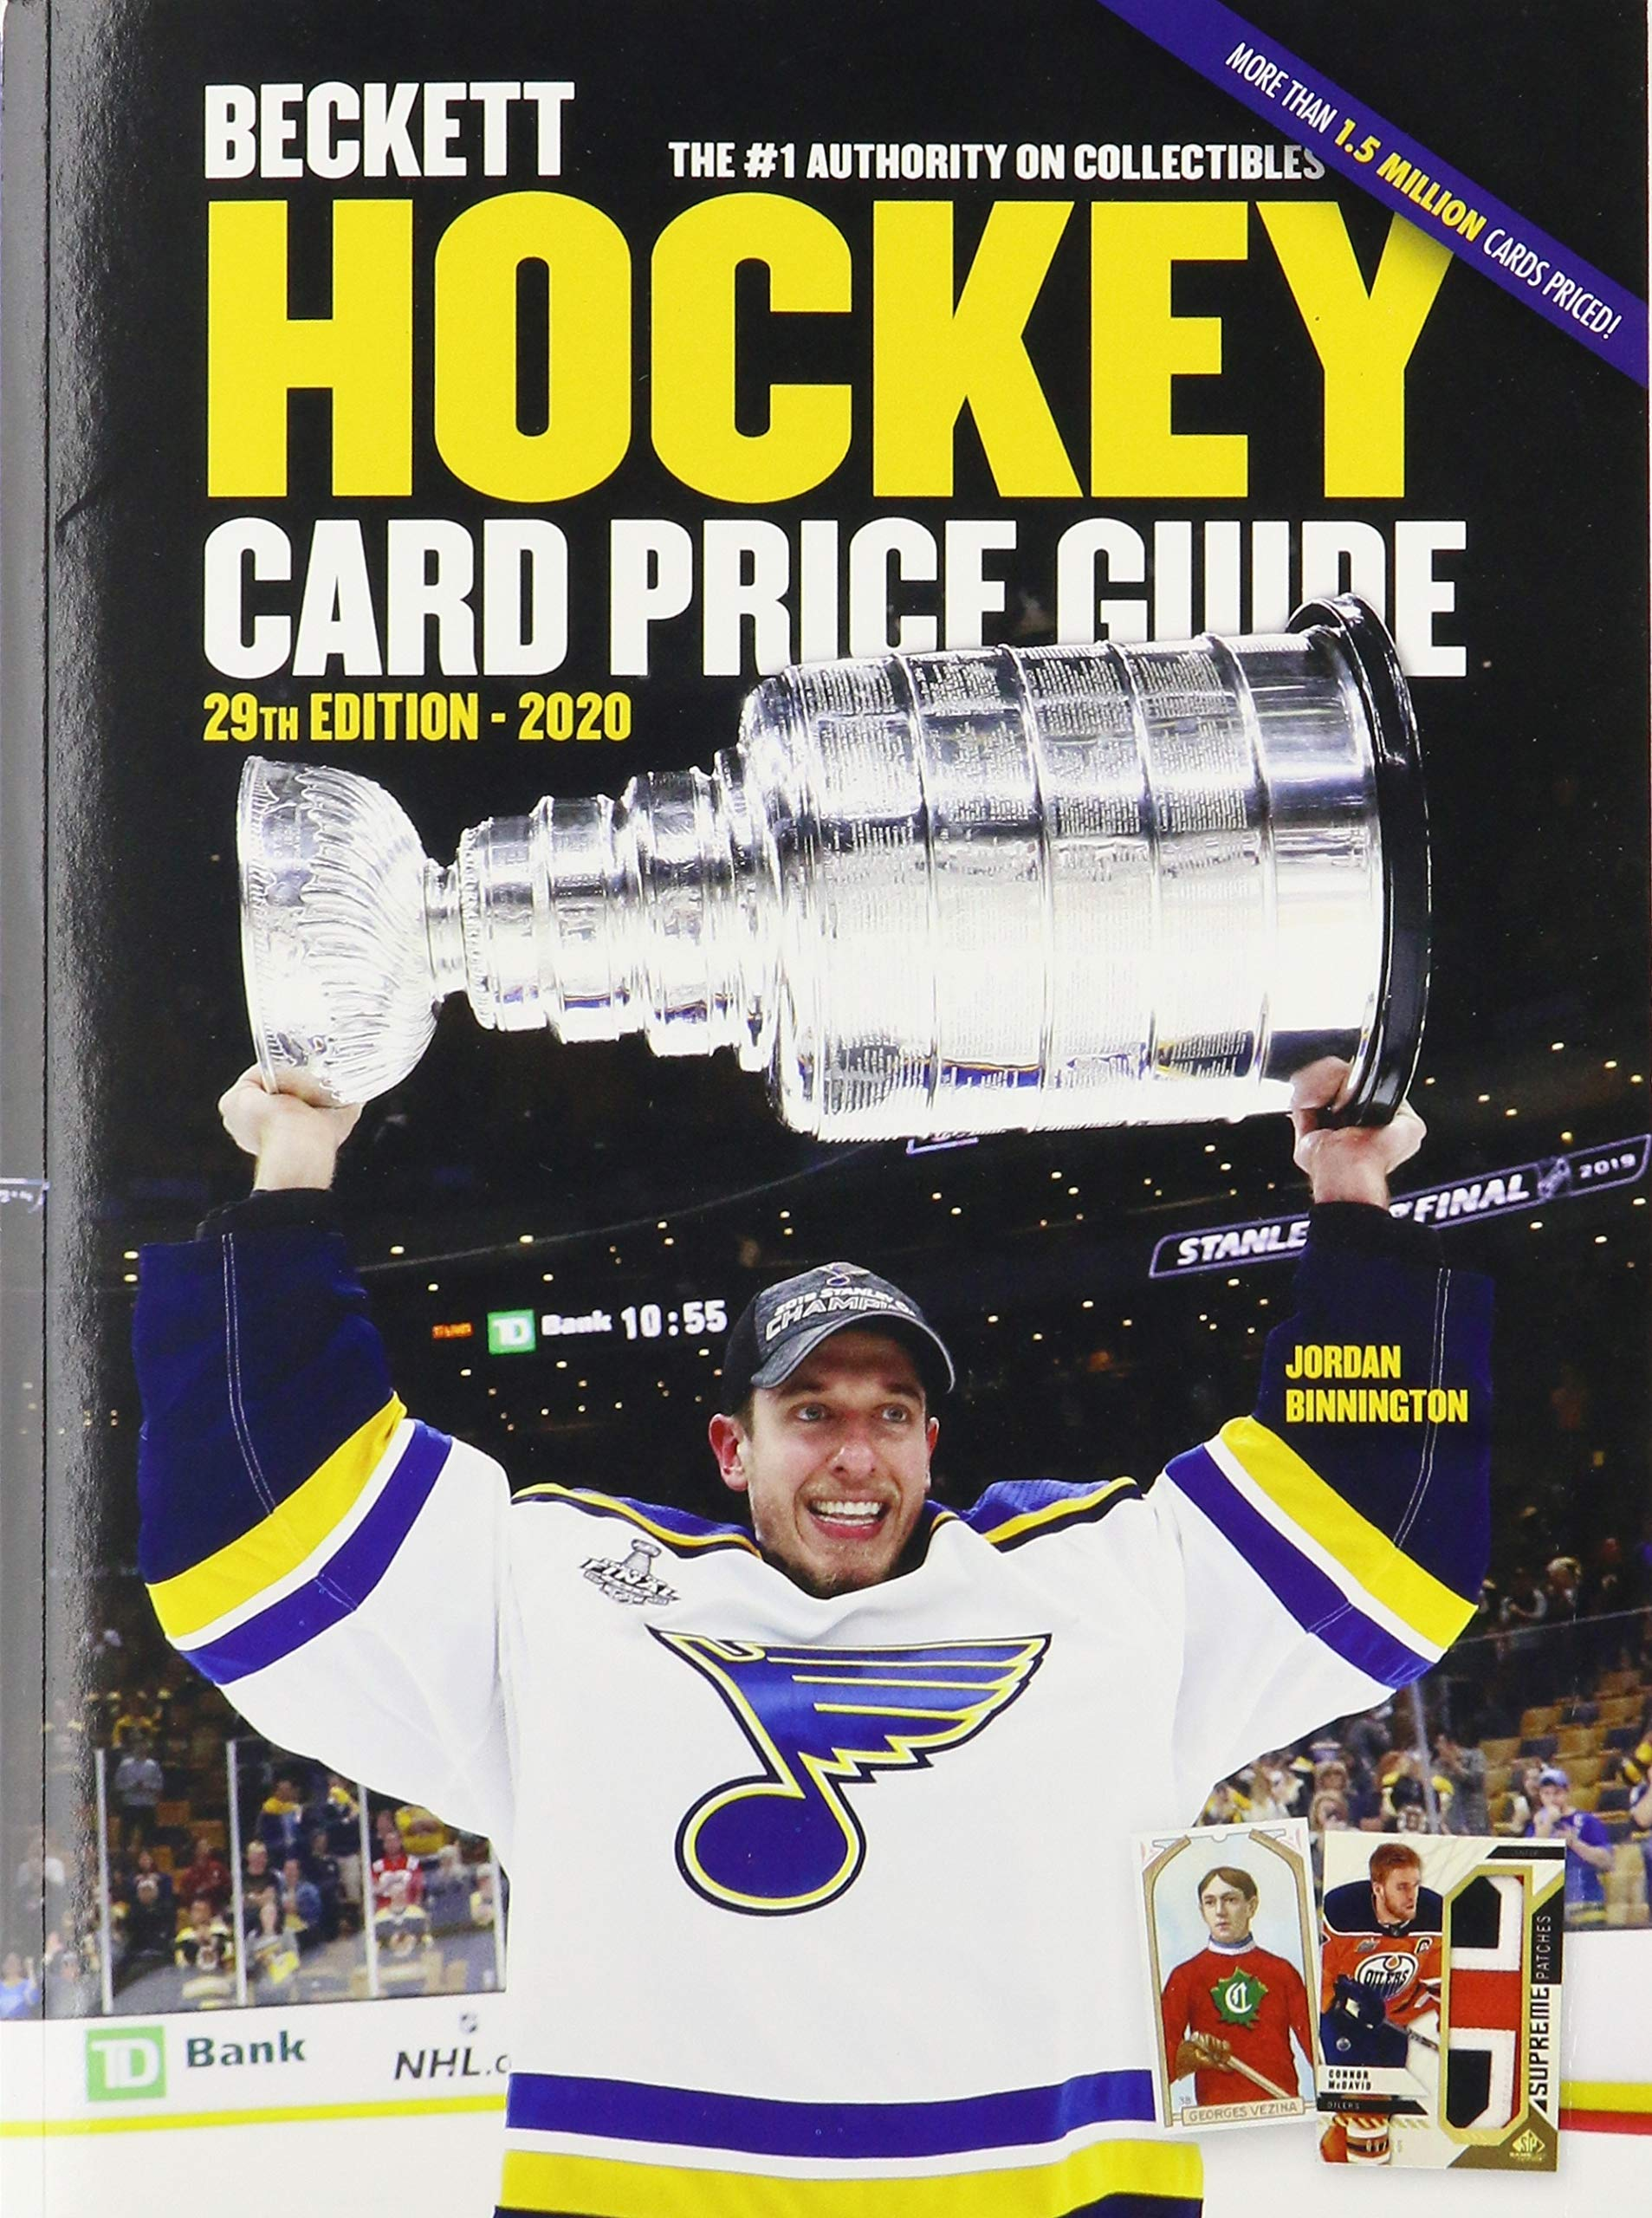 Beckett Hockey Price Guide #28